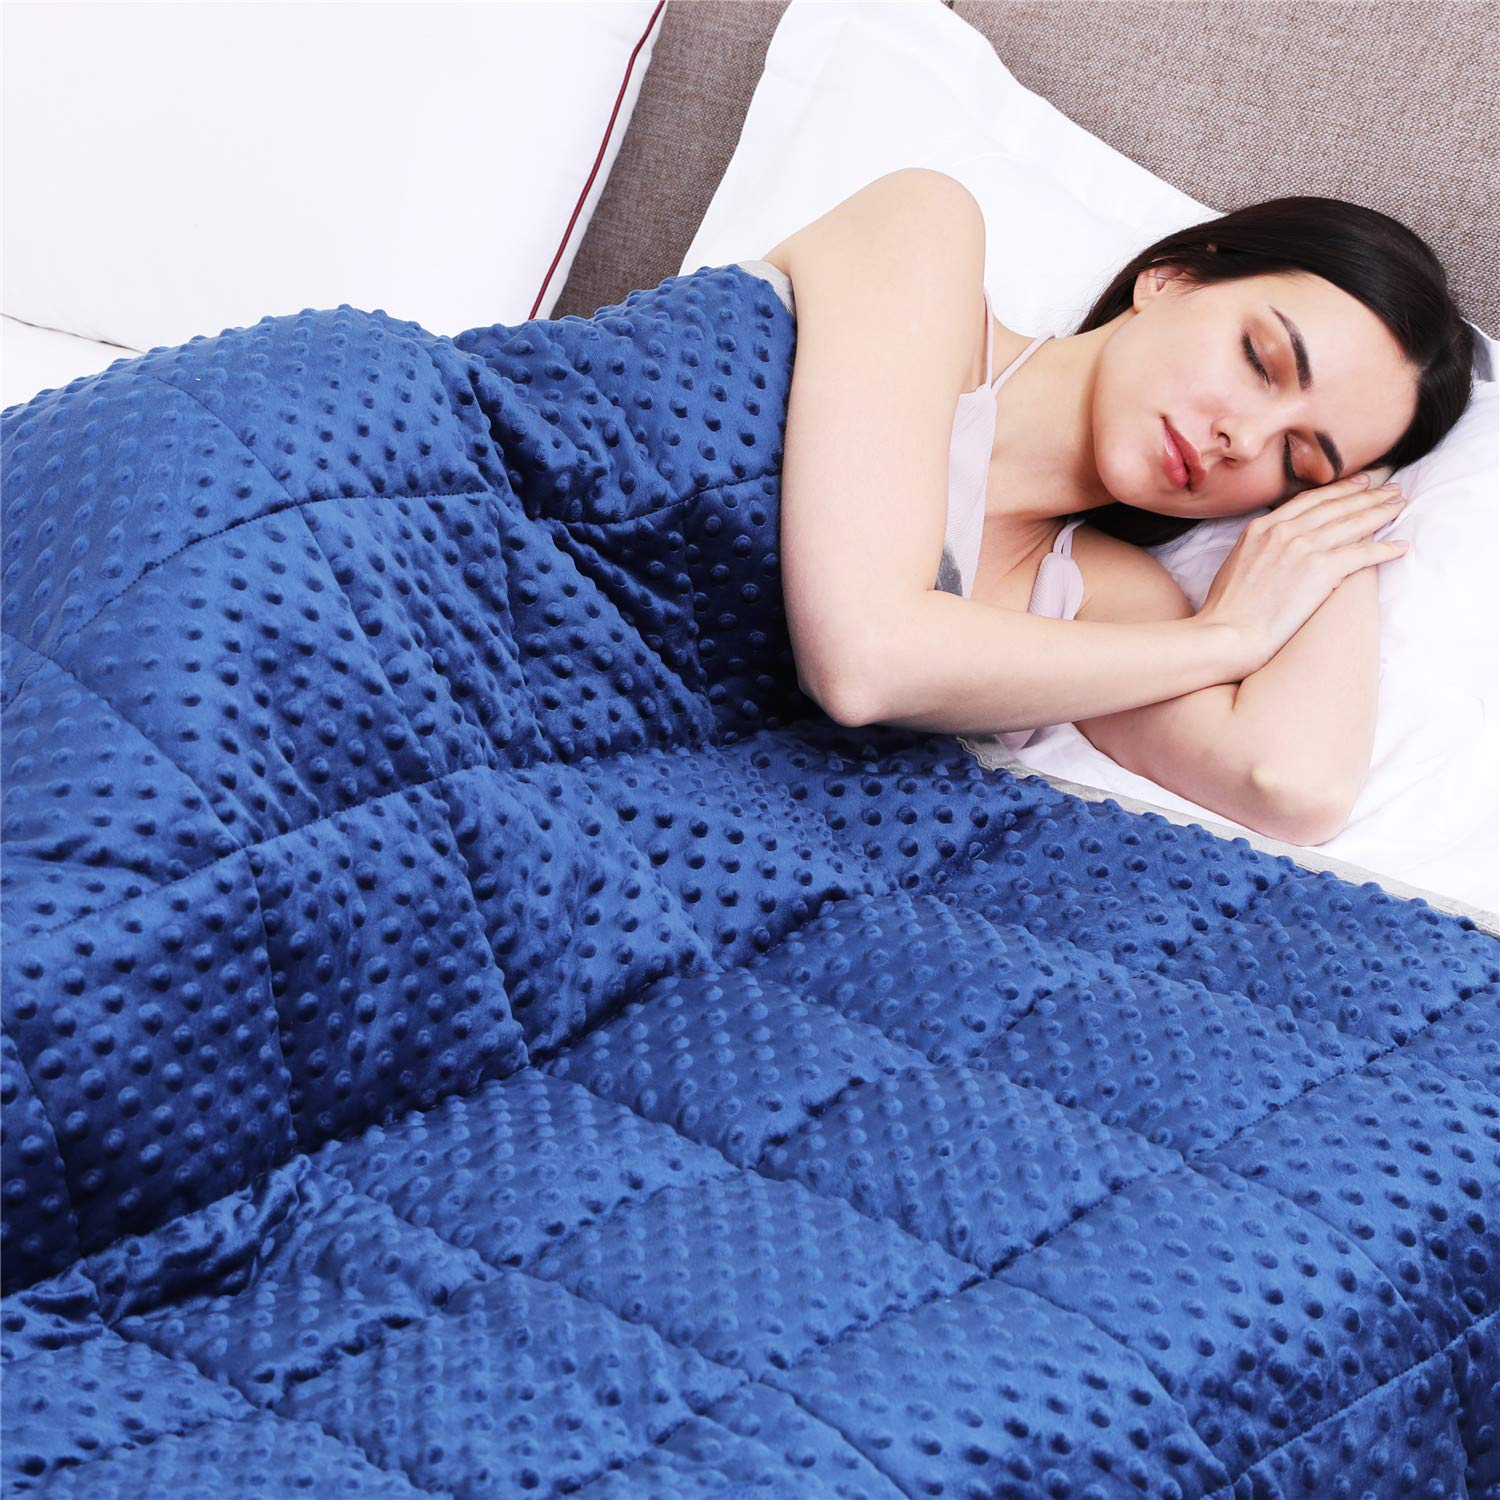 Kpblis Weighted Blanket 5 lbs 36'' x 48'' for 30-70 lbs, 7 Layers Heavy Blanket with Soft and Breathable Fabric for All-Seasons, Navy/Grey